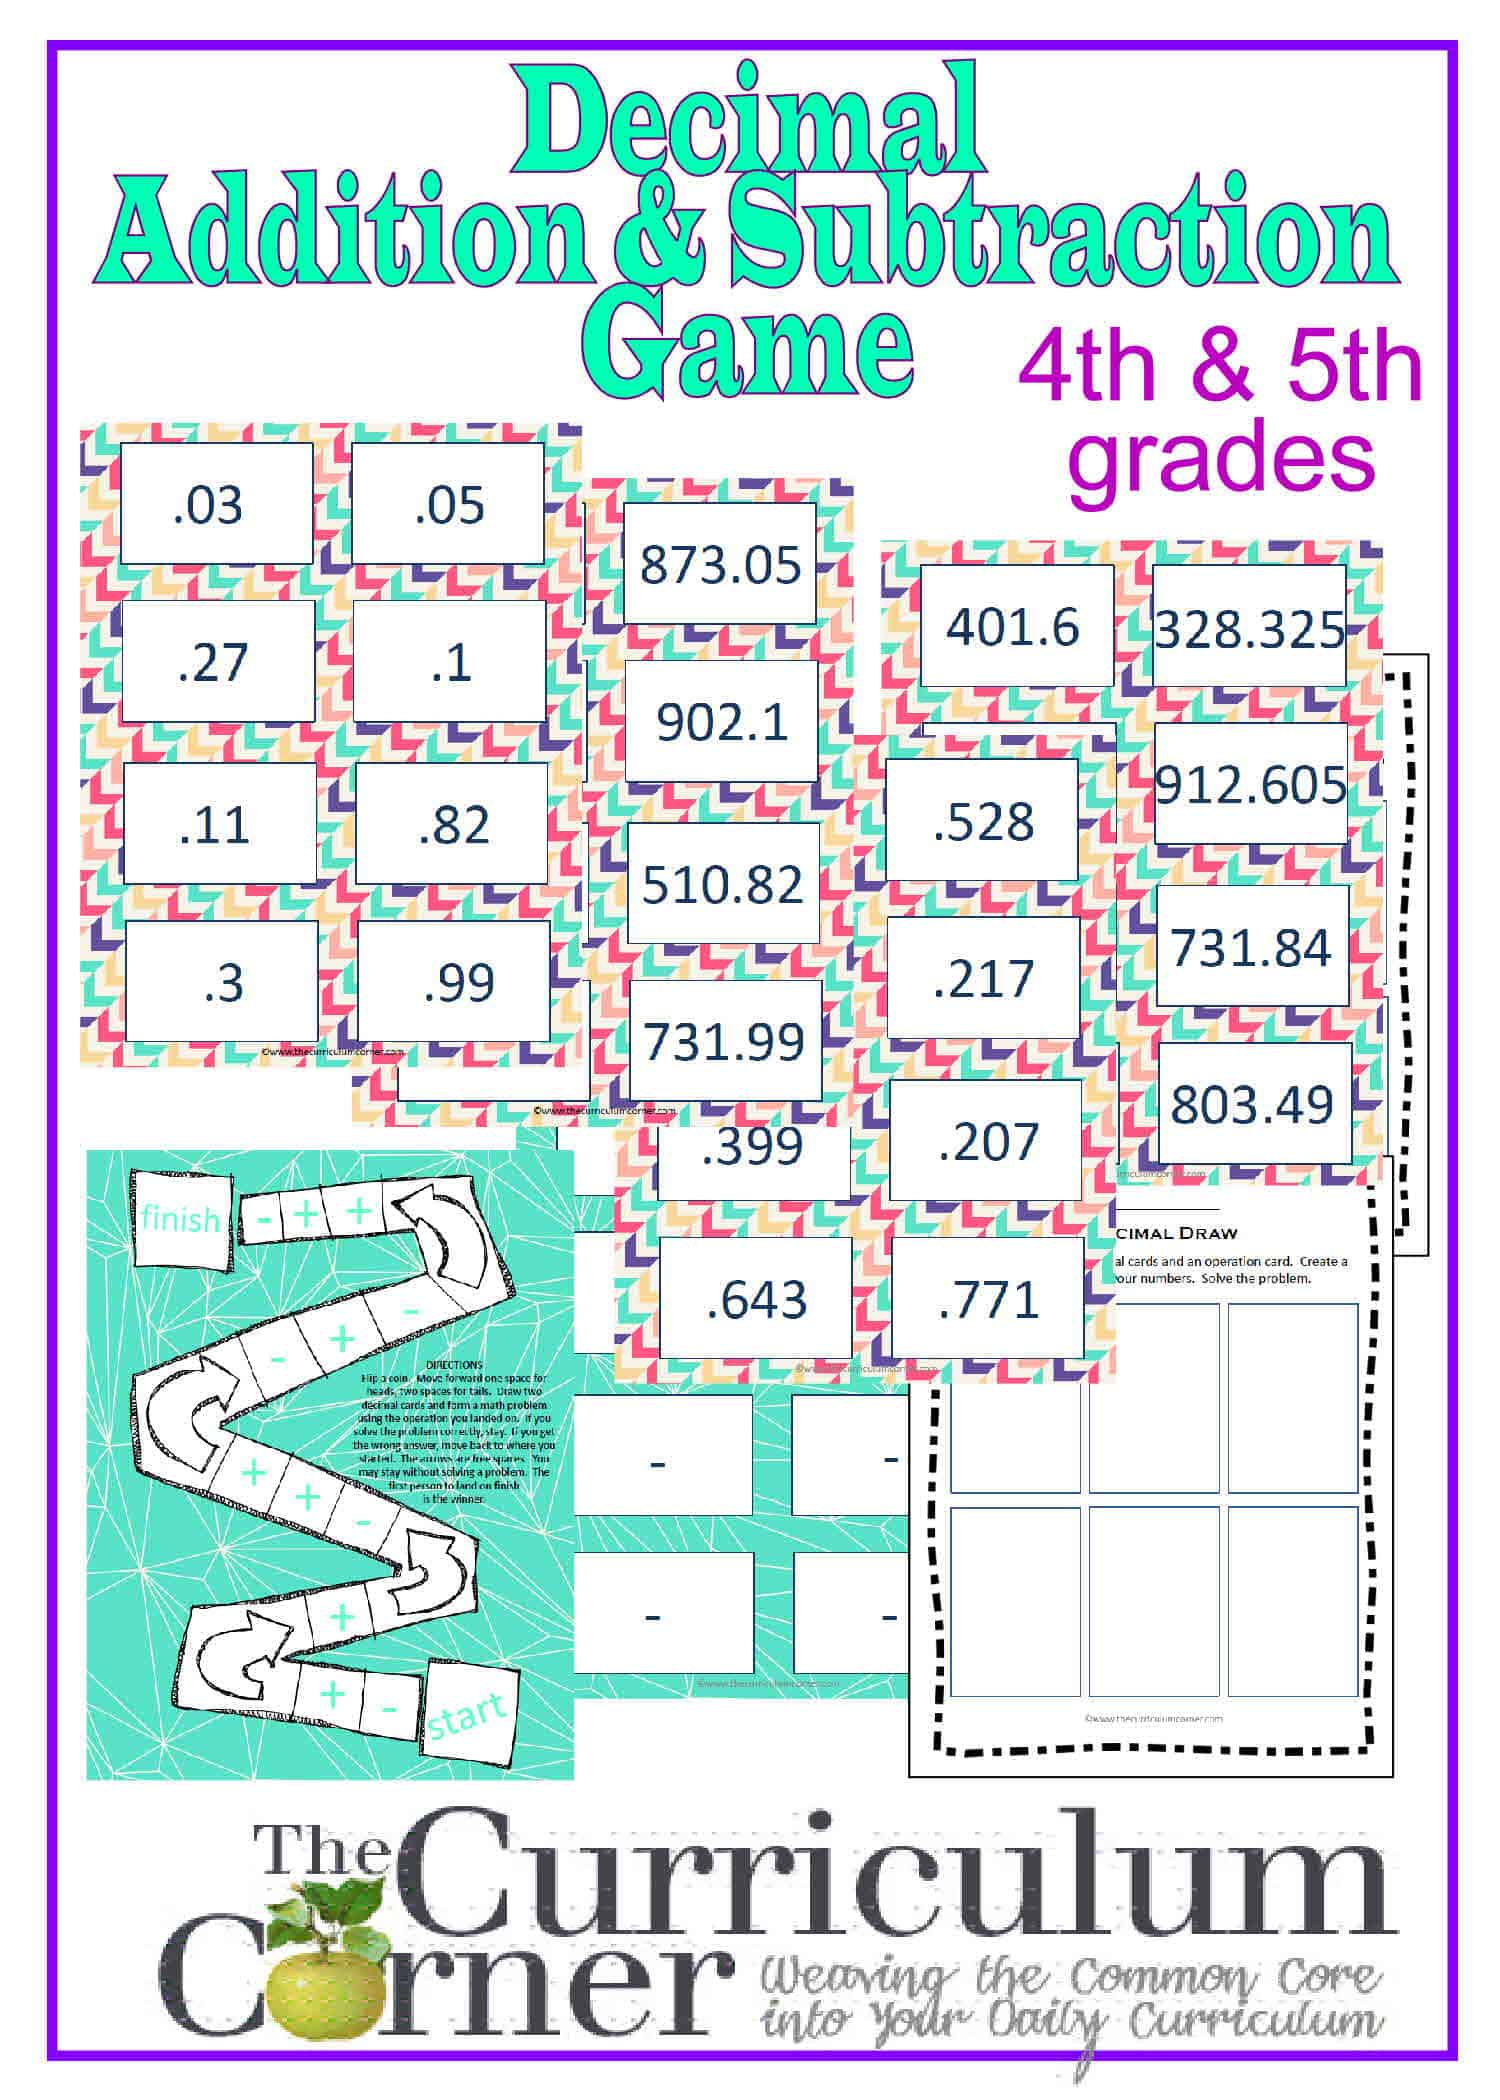 Adding And Subtracting Decimals Game For 4th Amp 5th Grades